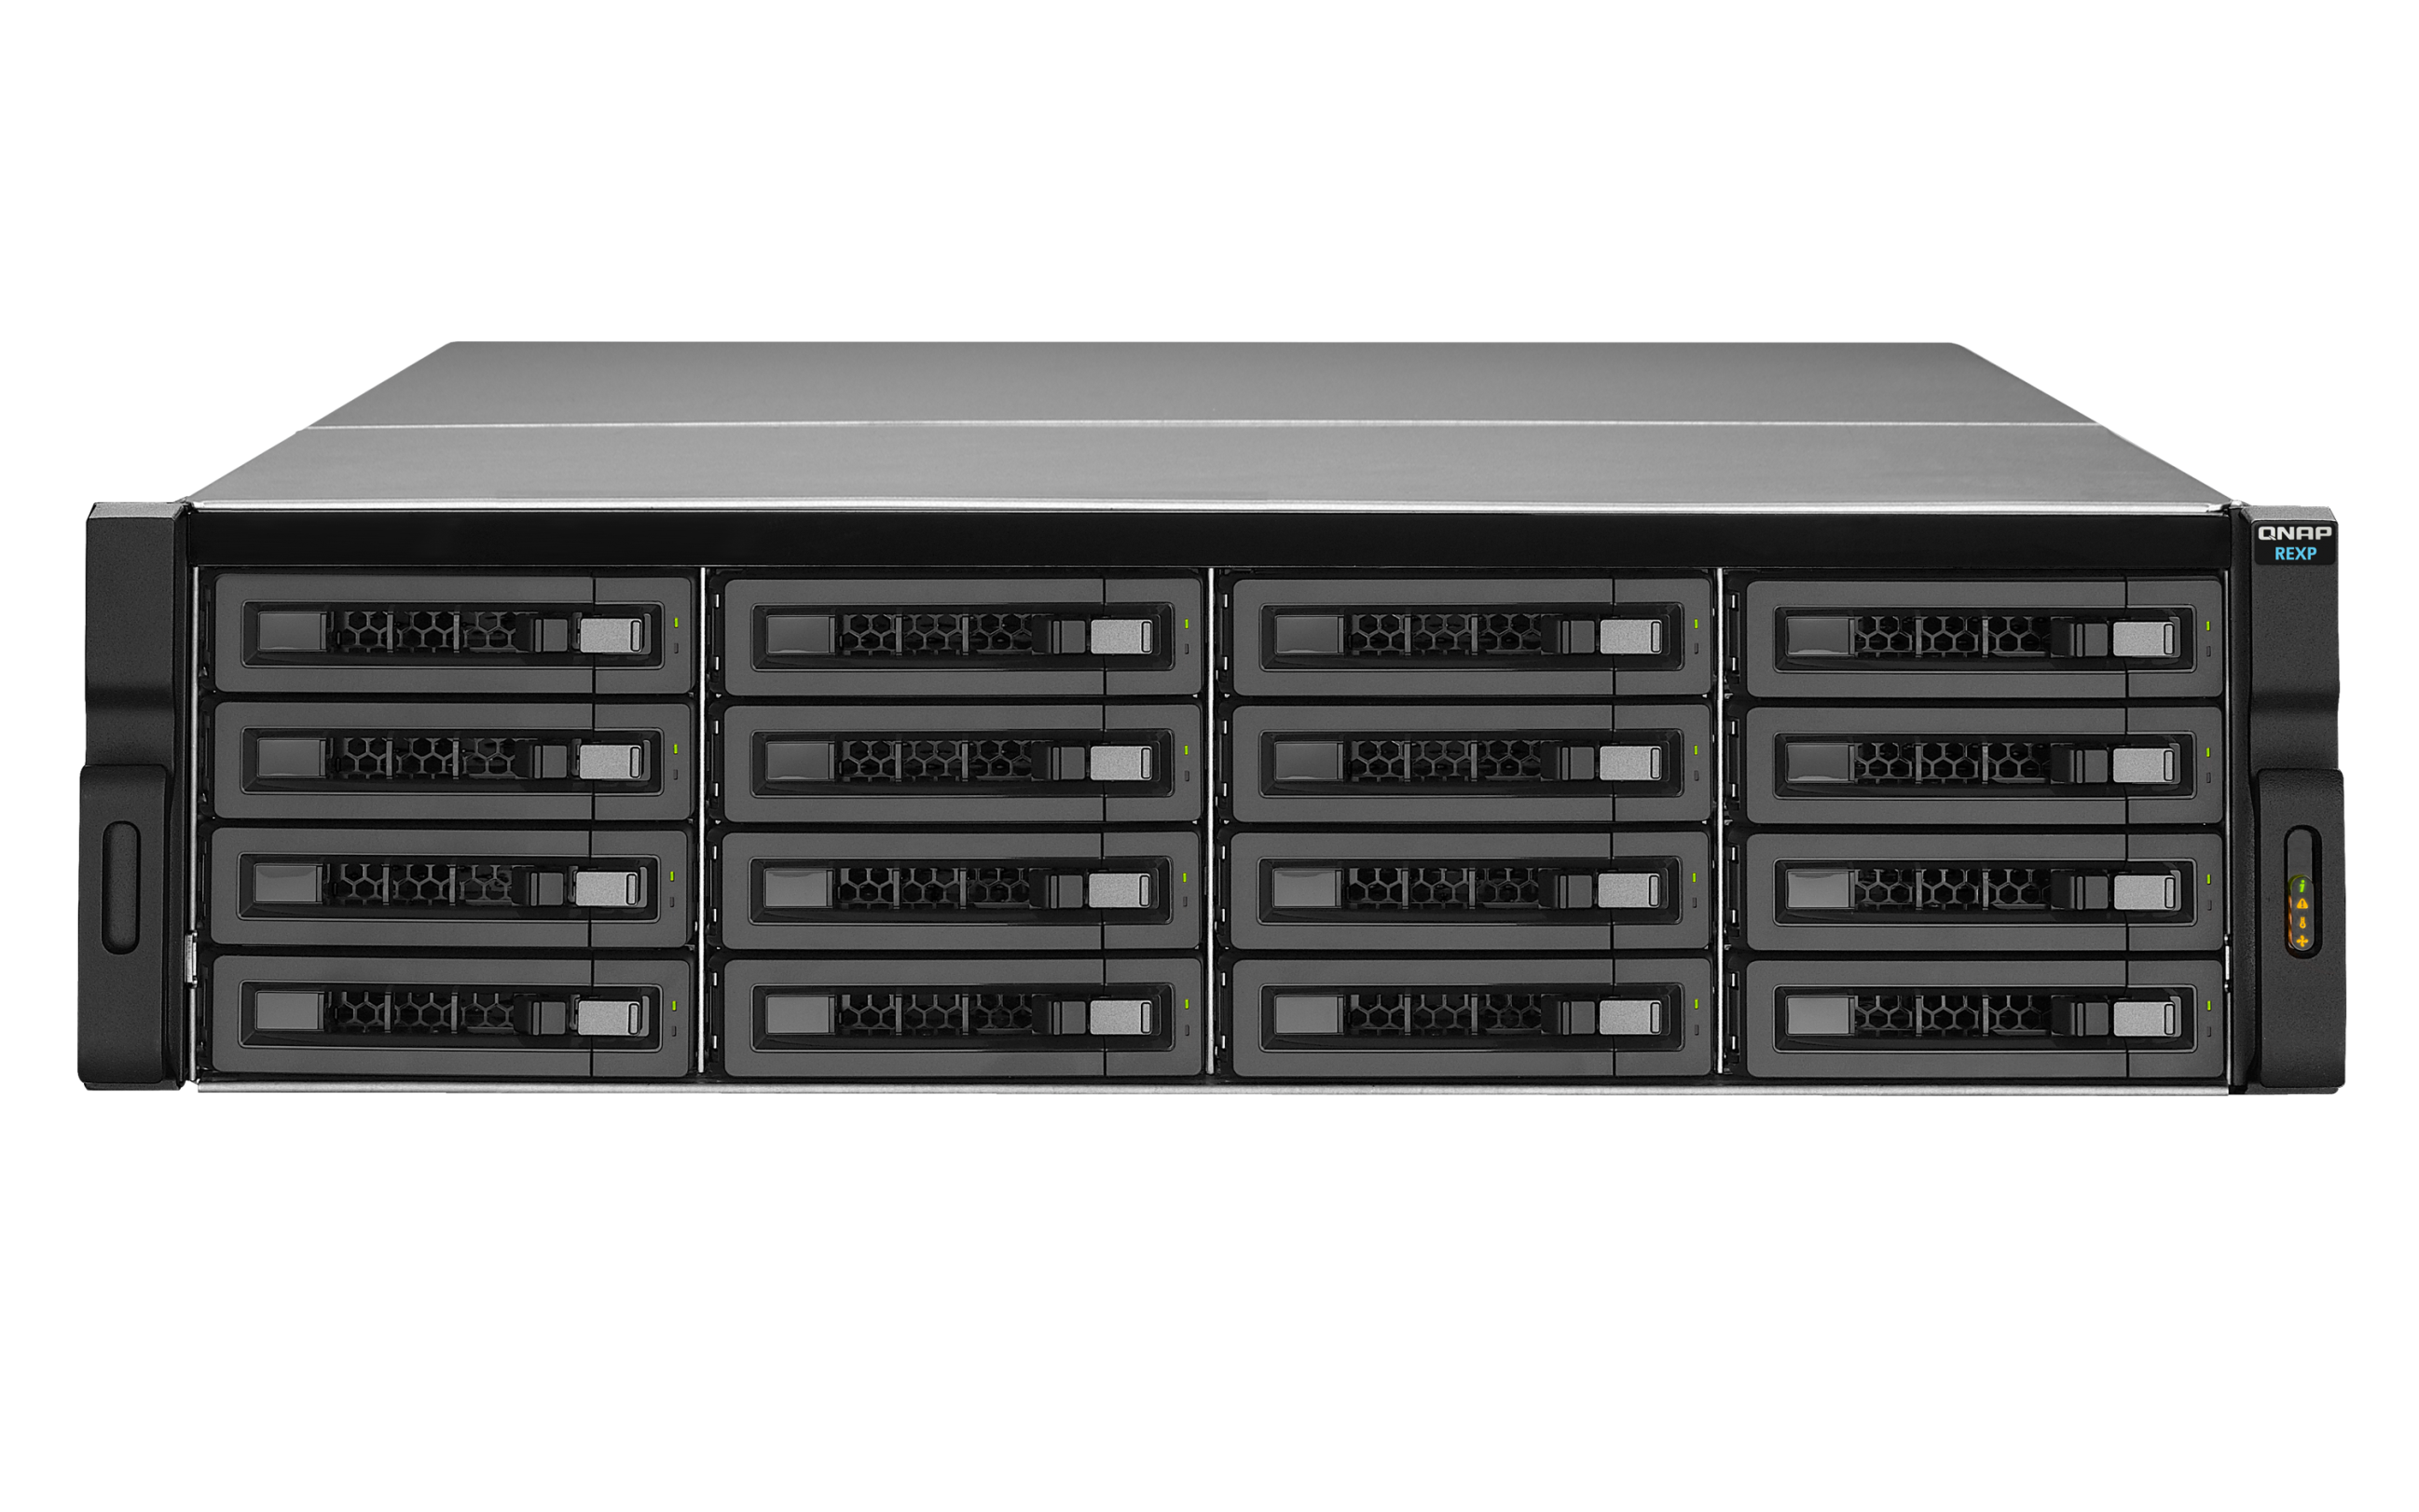 QNAP REXP-1600U-RP (16-Bay Expansion unit)